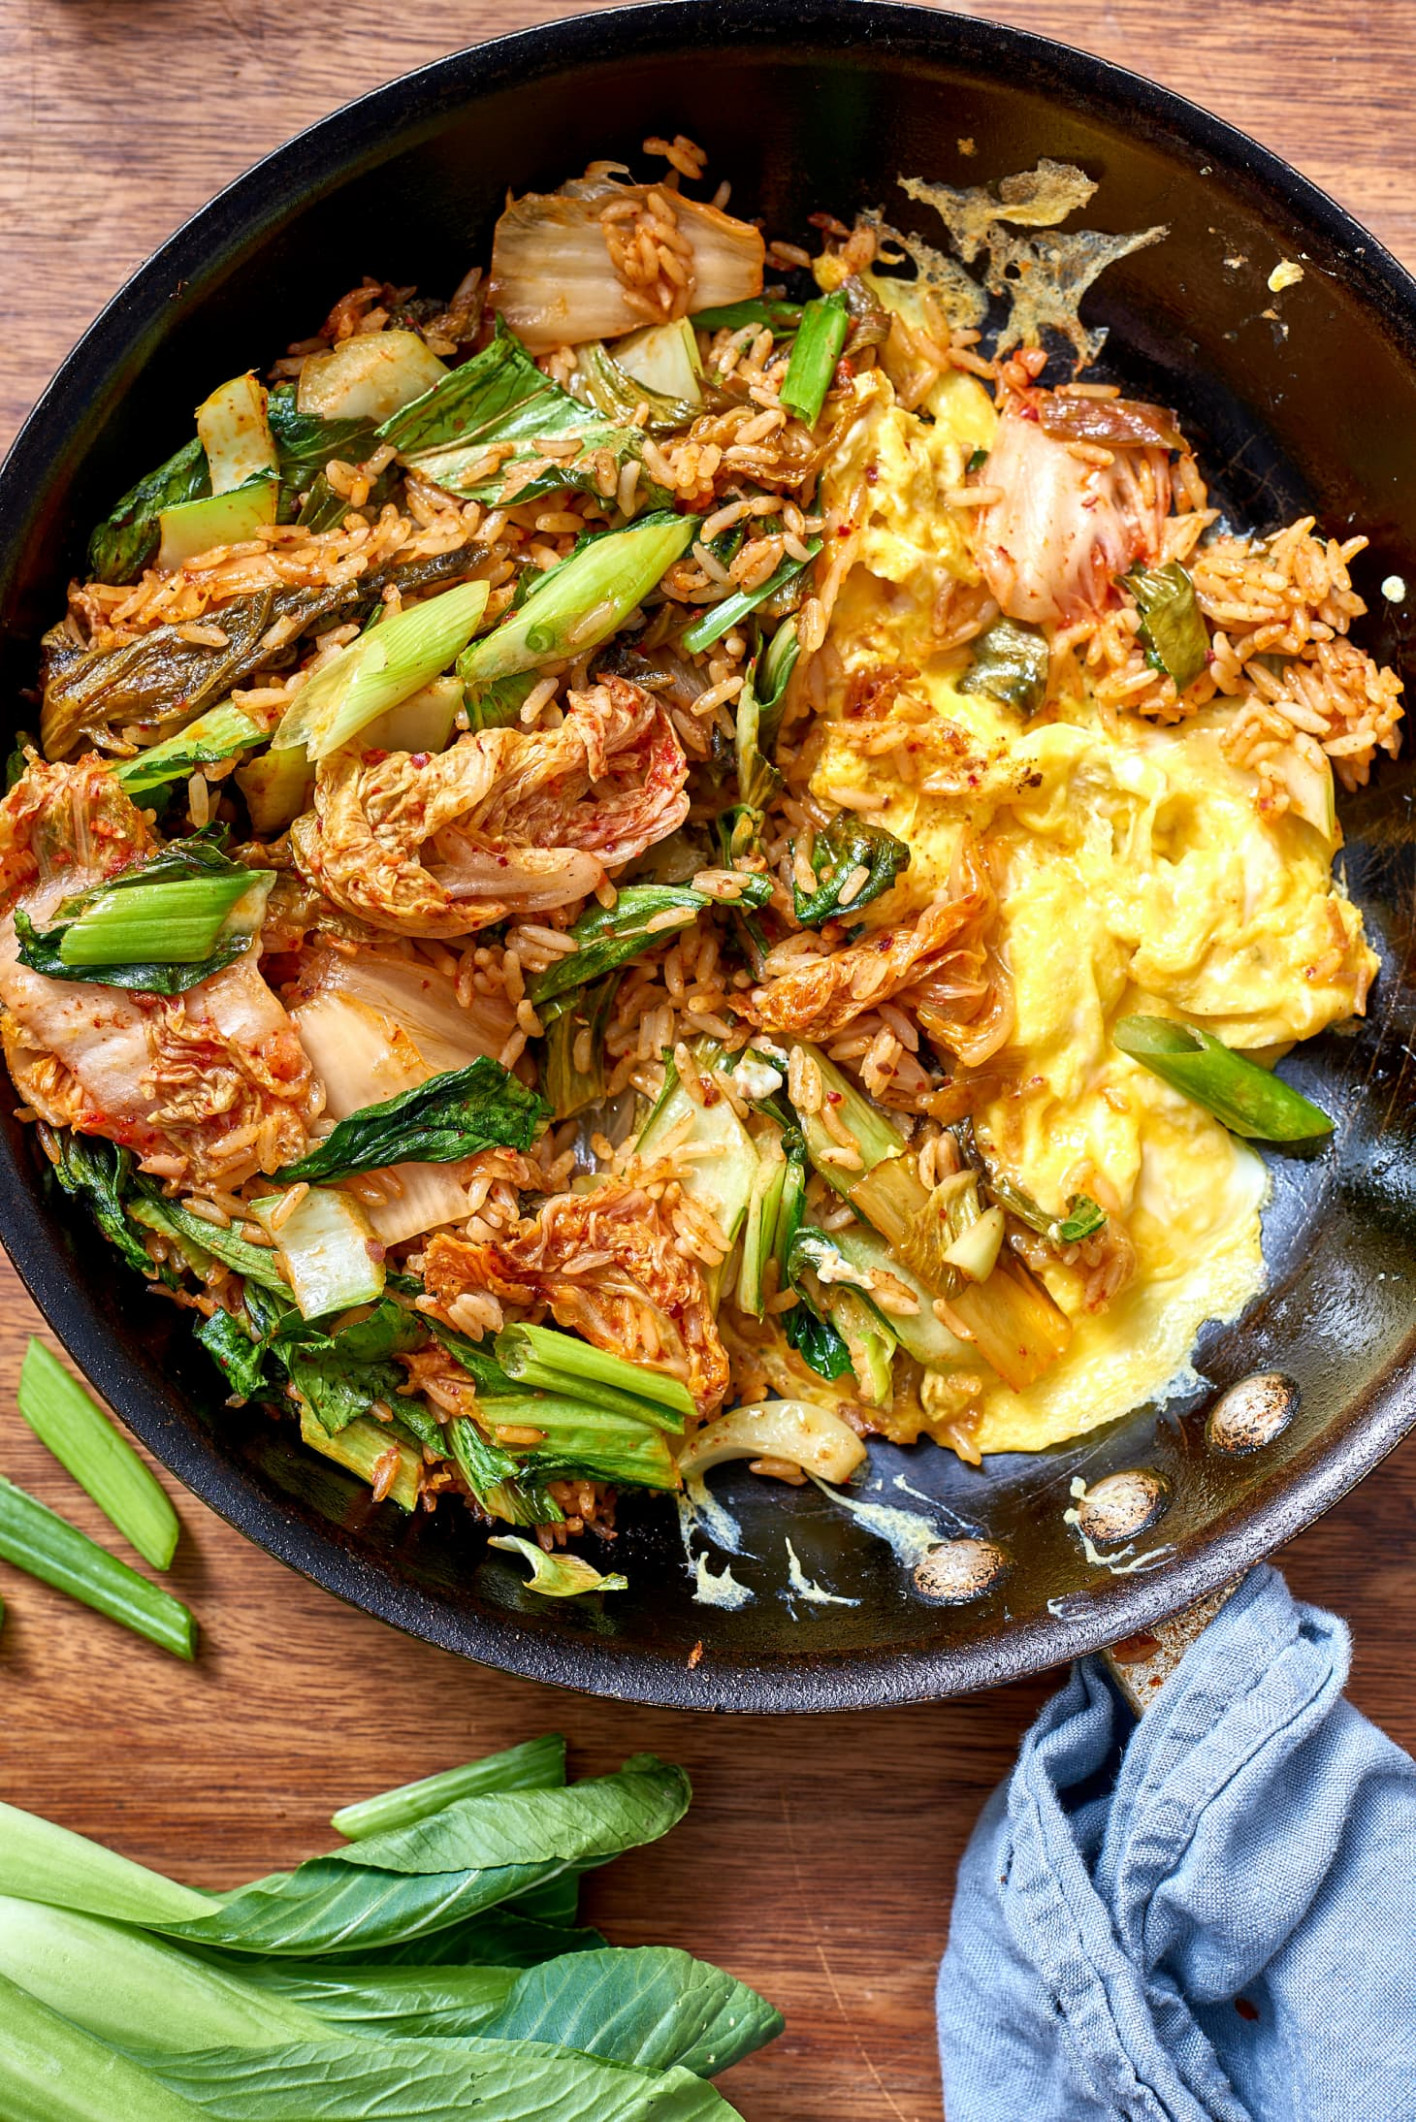 13 Delicious Ways To Eat Eggs For Dinner | Kitchn - Recipes Dinner Eggs